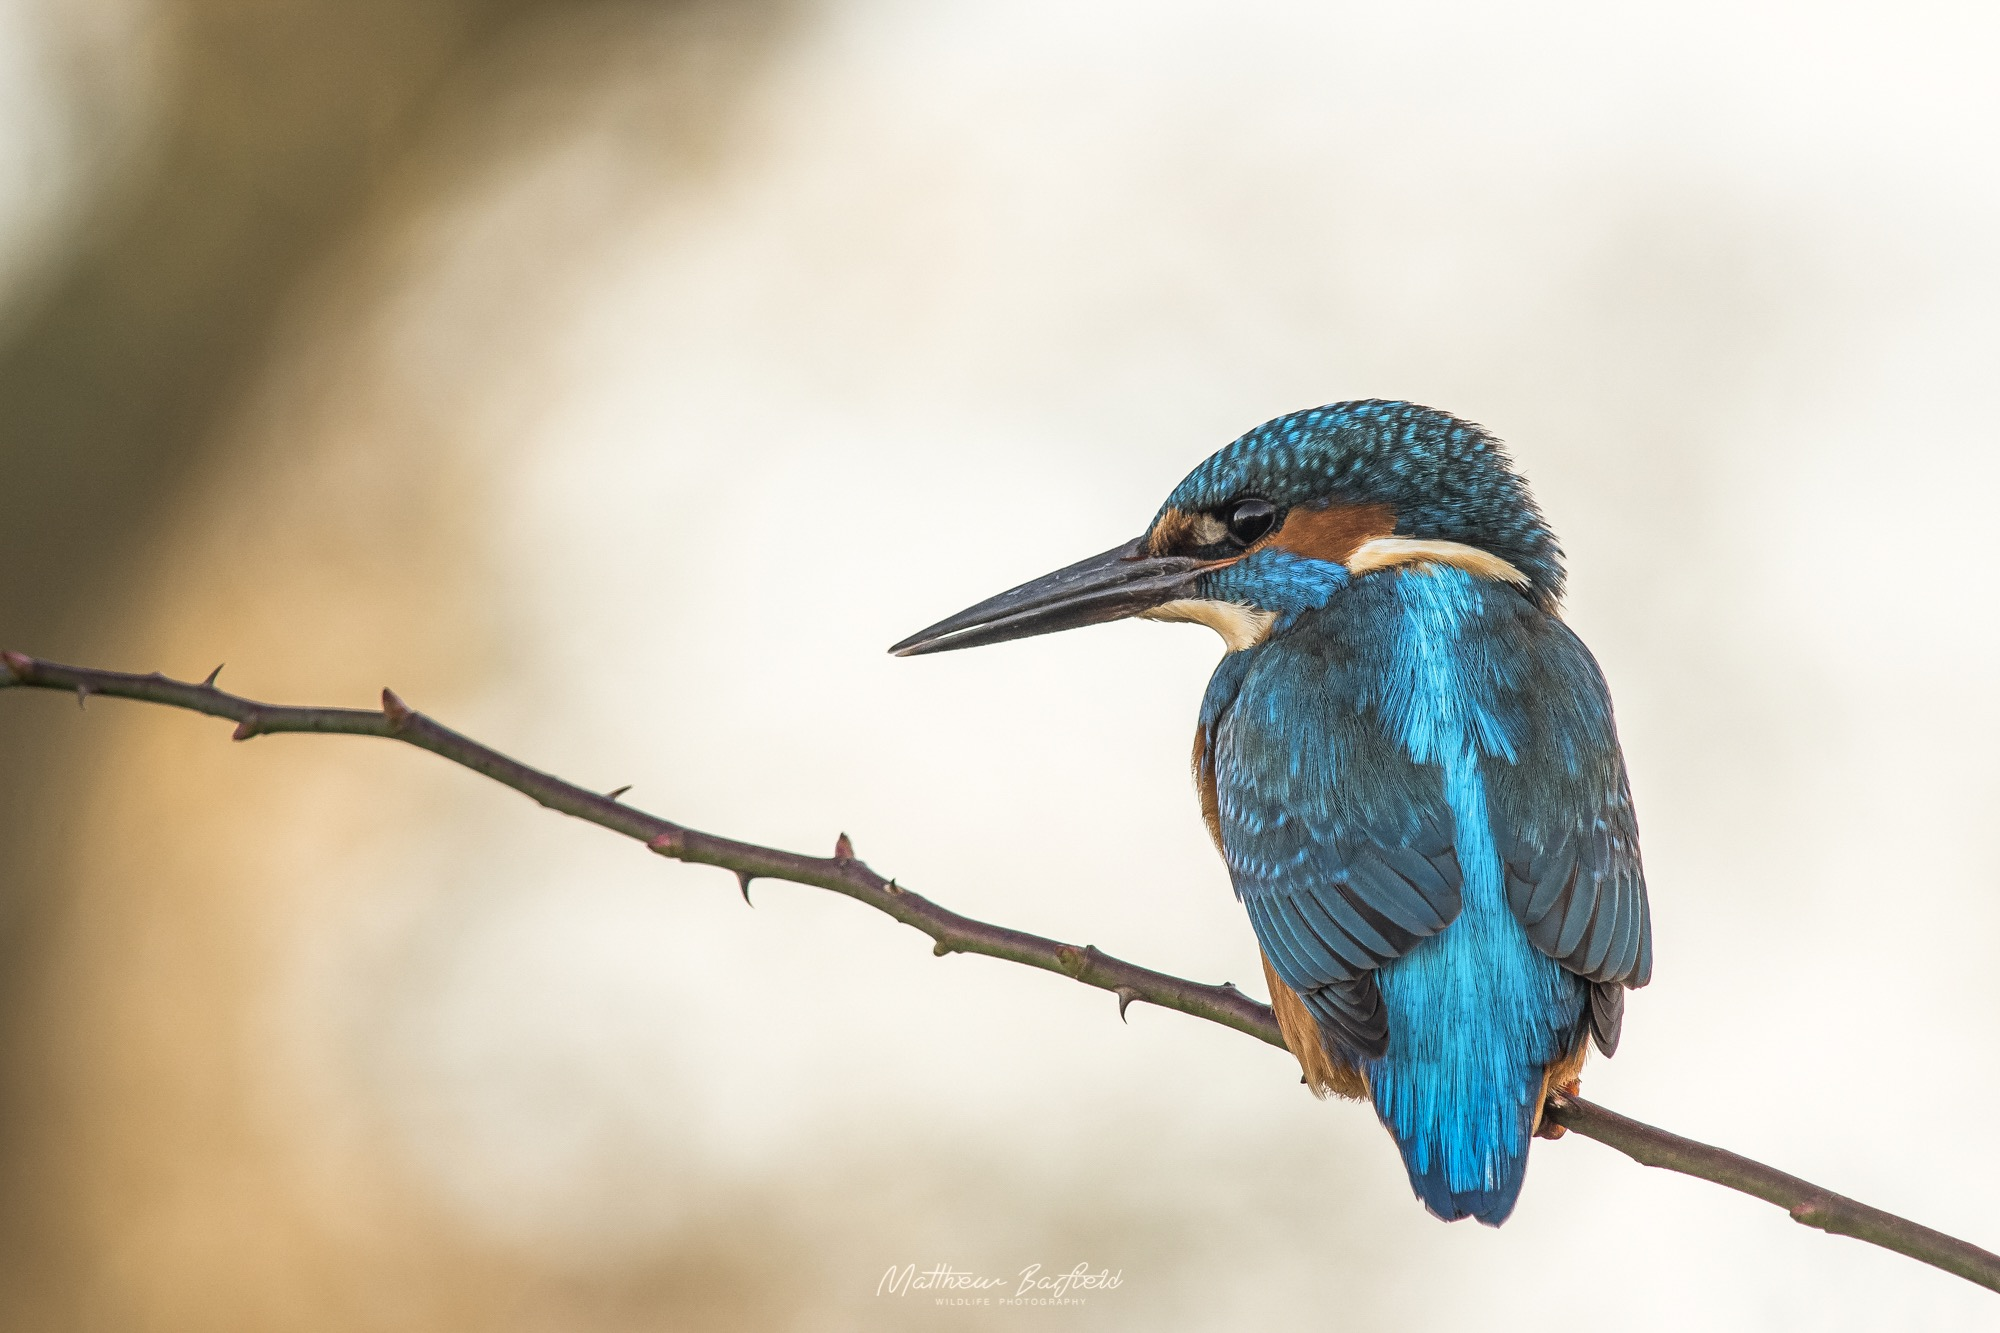 Matthew Barfield Wildlife Photography New Forest Birds Kingfisher